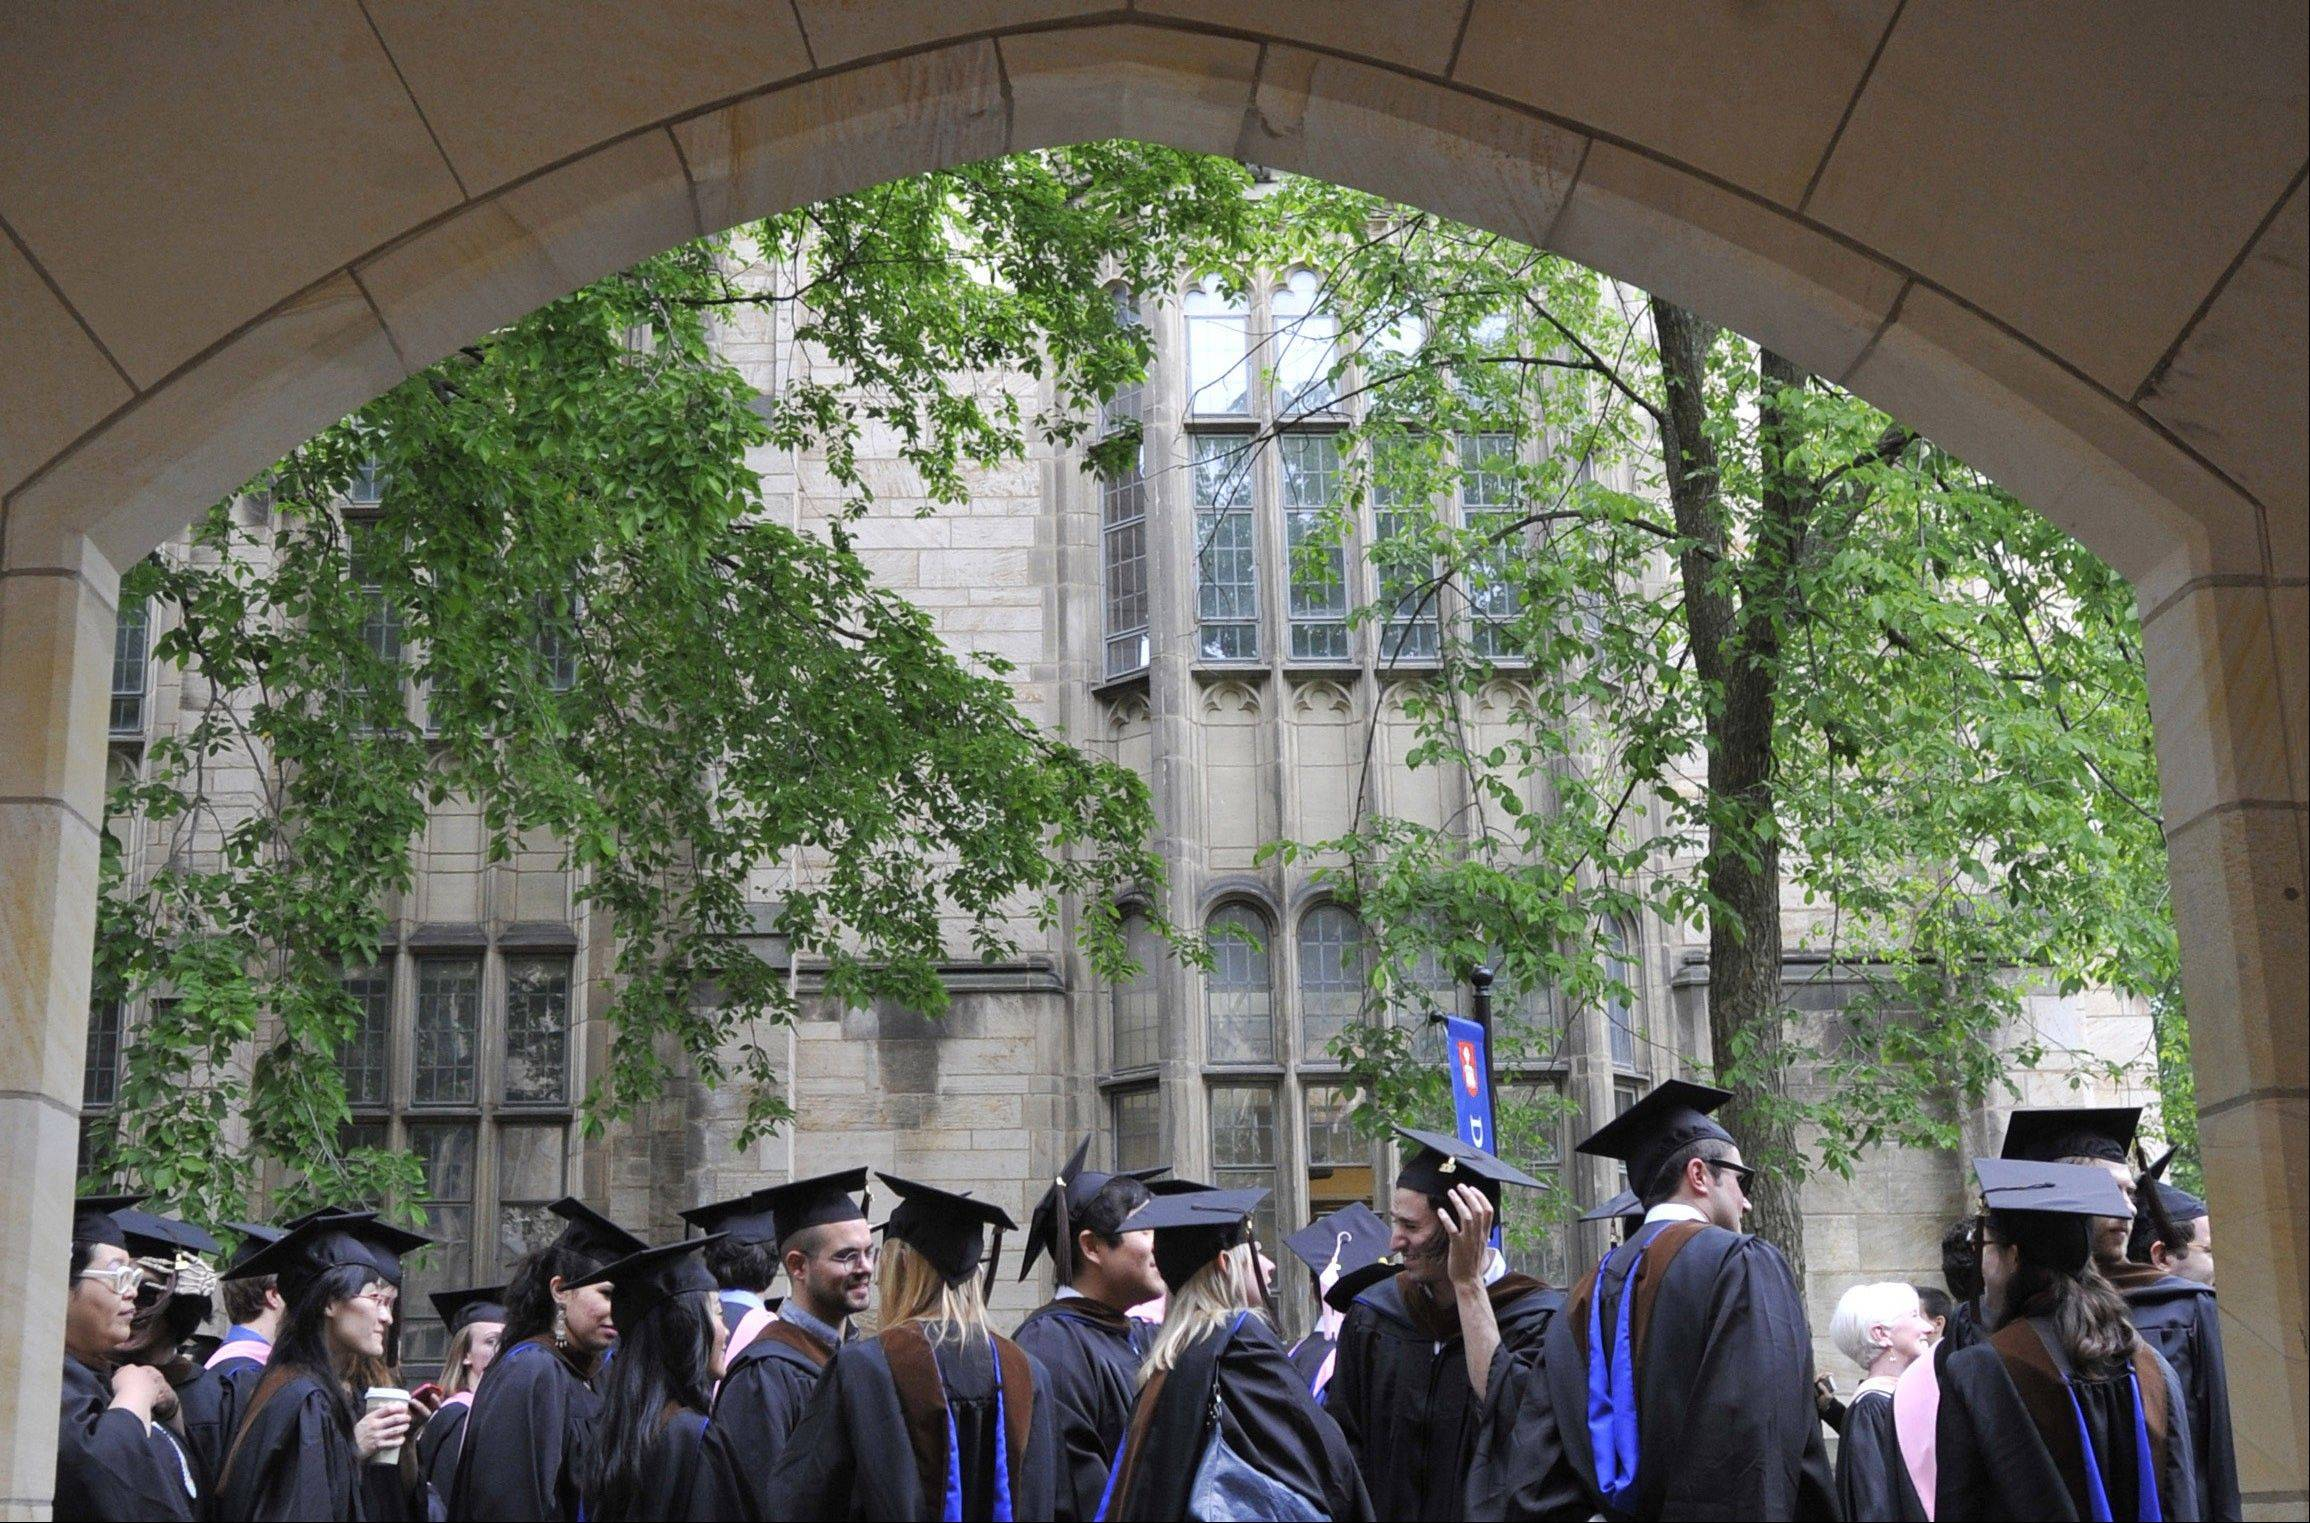 Associated Press/May 24, 2010Future graduates wait for the procession to begin for commencement at Yale University in New Haven, Conn.